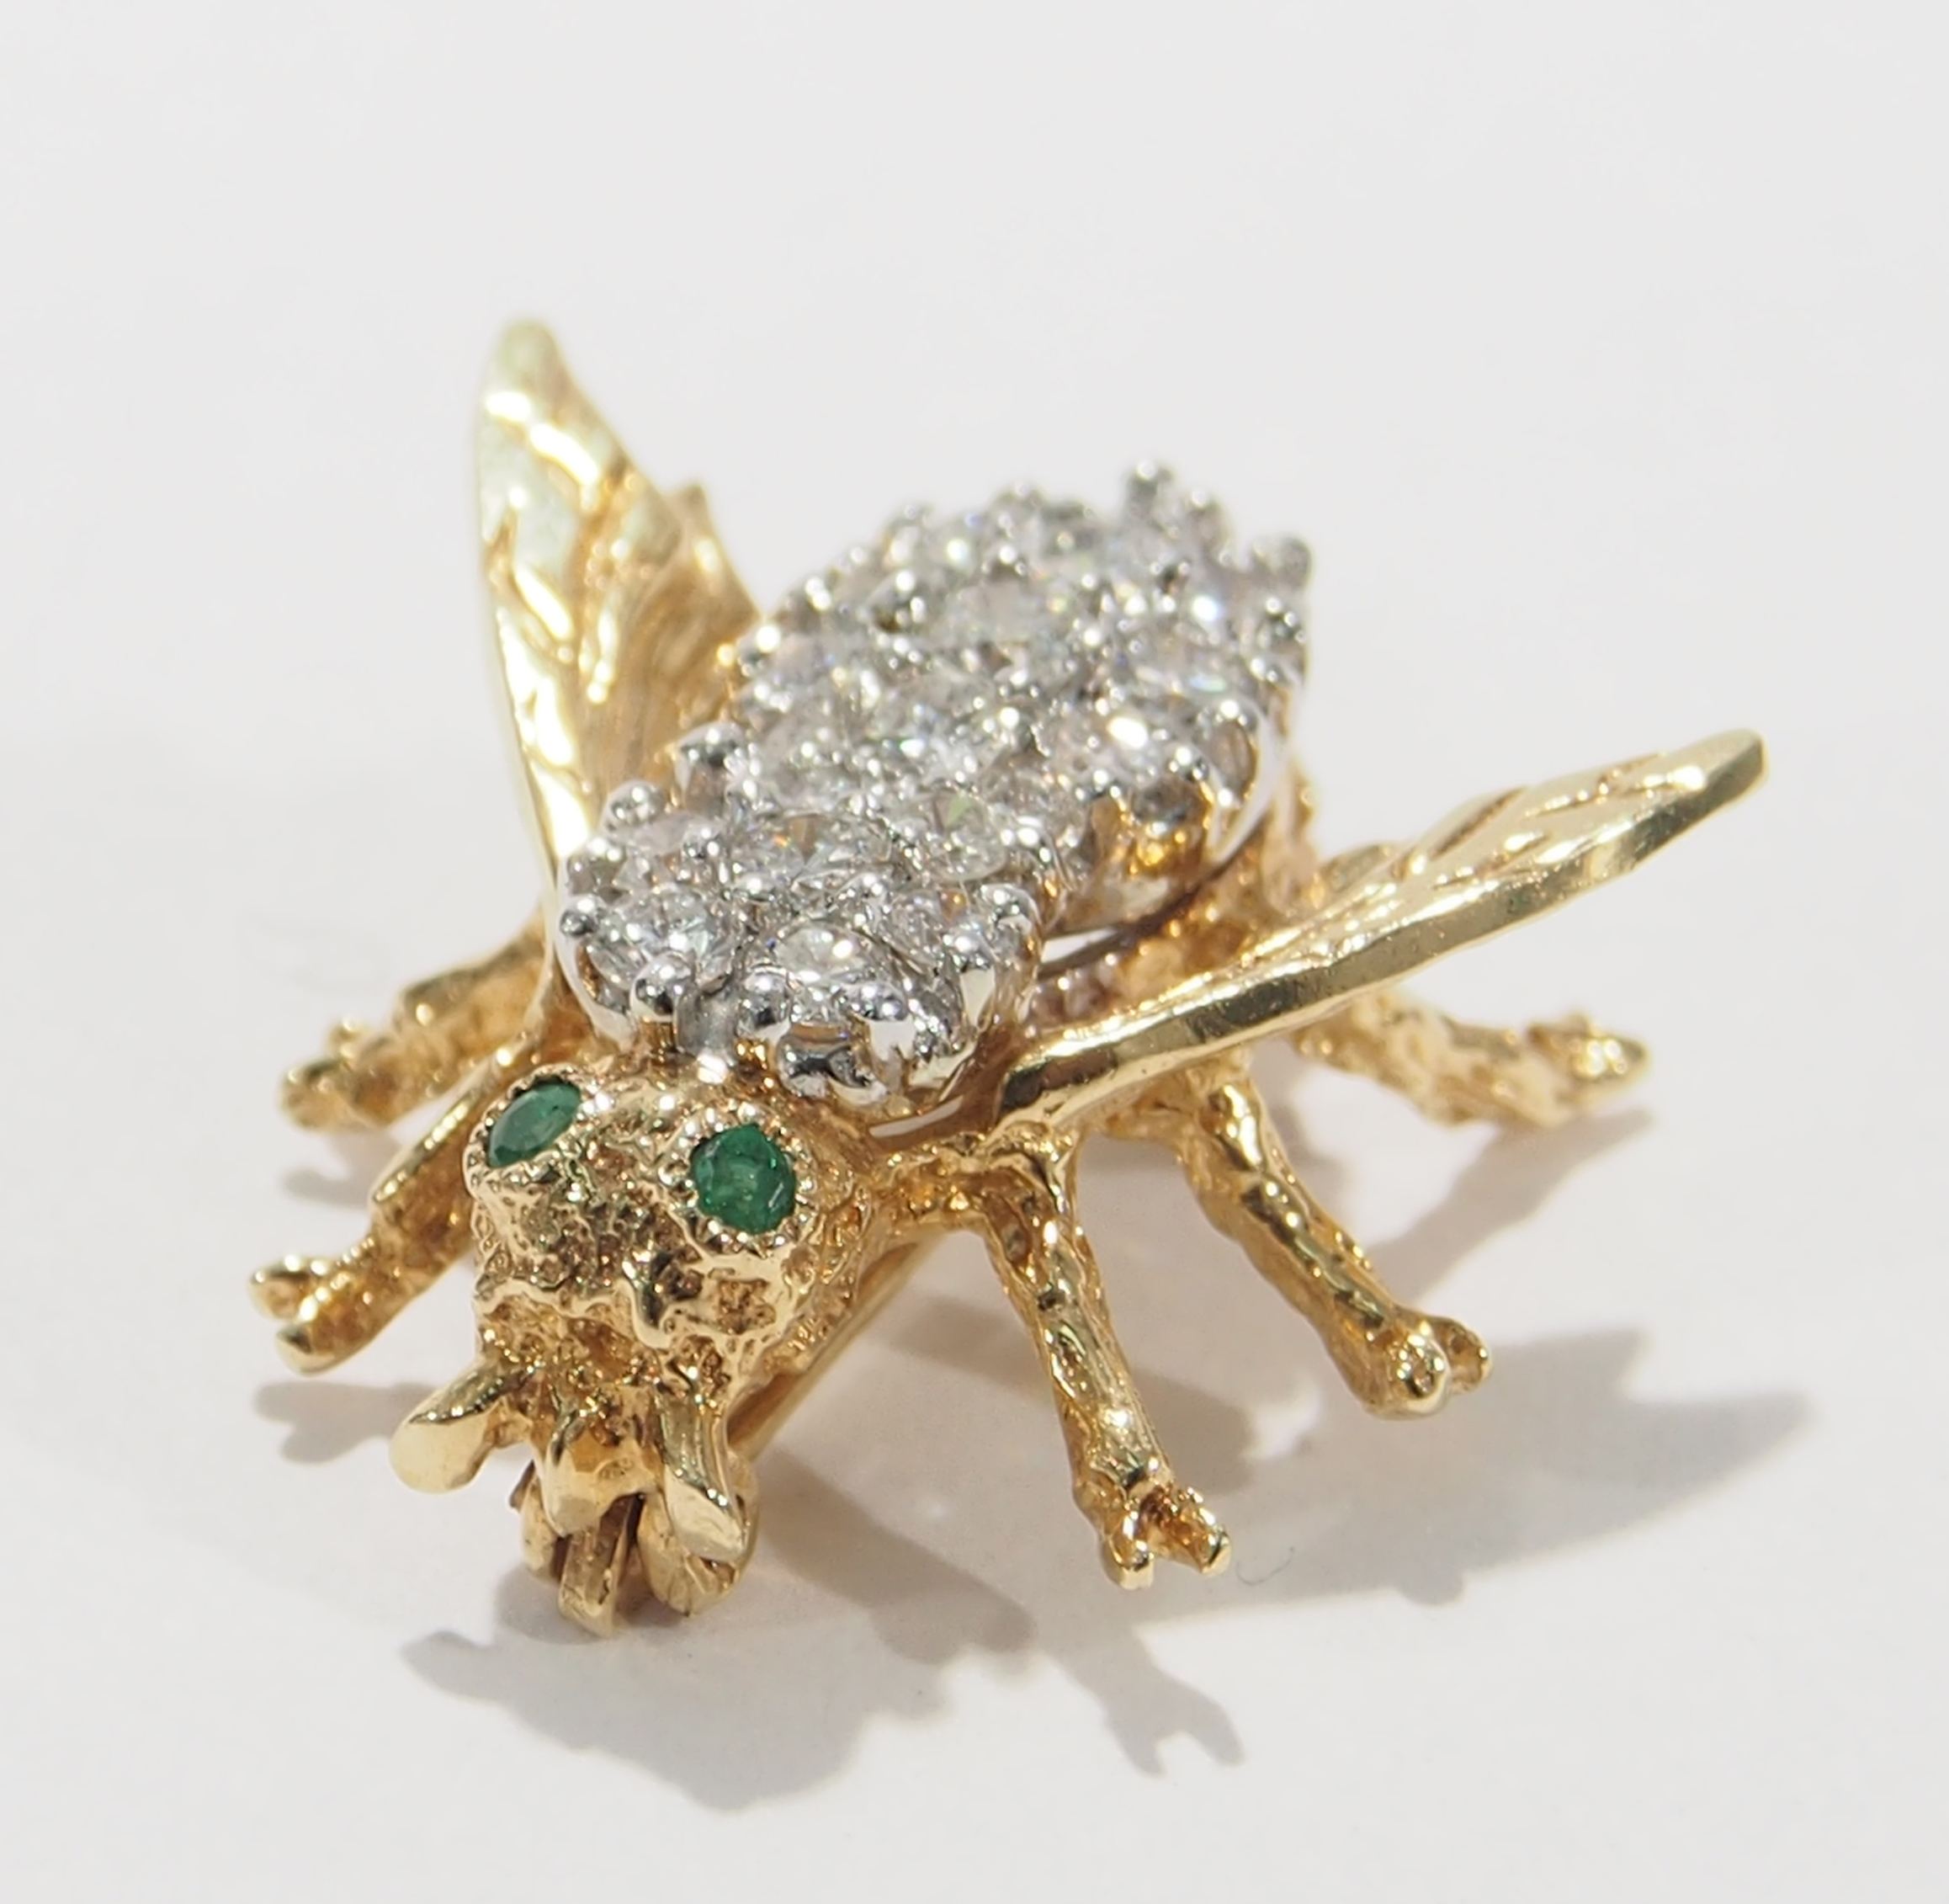 Jewelry & Watches 14k Gold Emerald And Diamond Fly Pin Brooch Buy One Get One Free Fine Jewelry